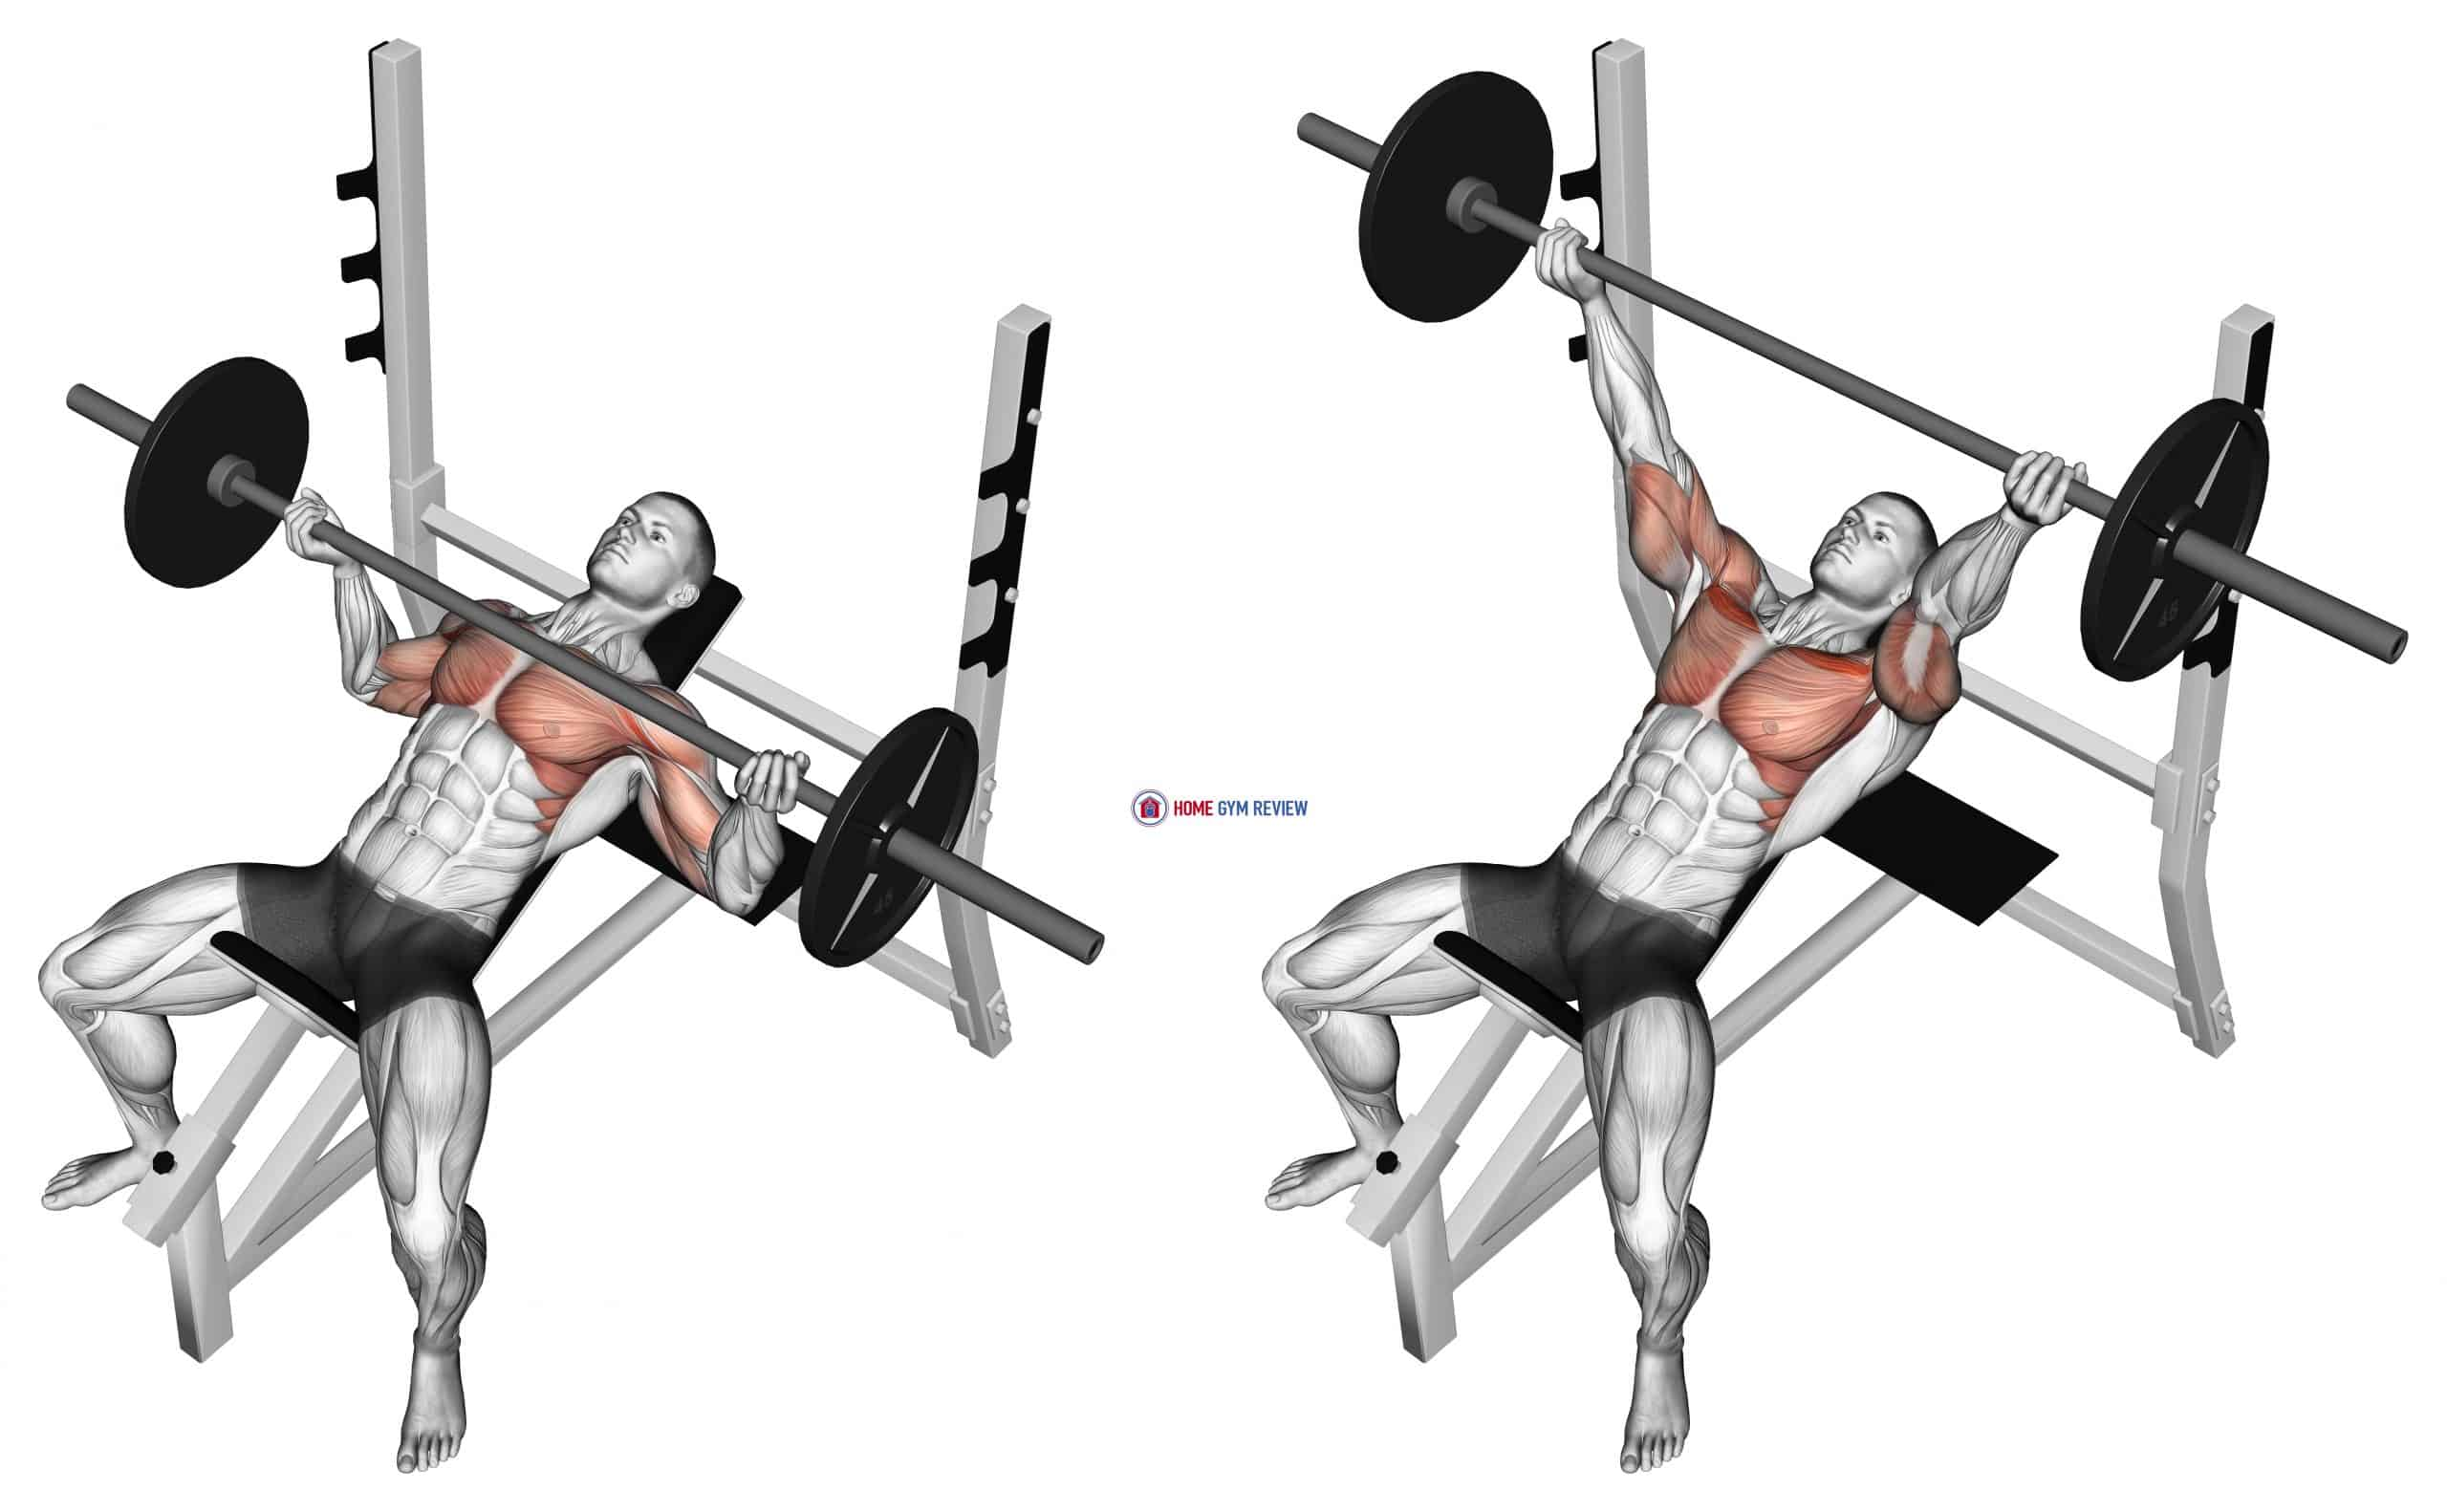 Barbell Incline Wide Reverse-grip Bench Press